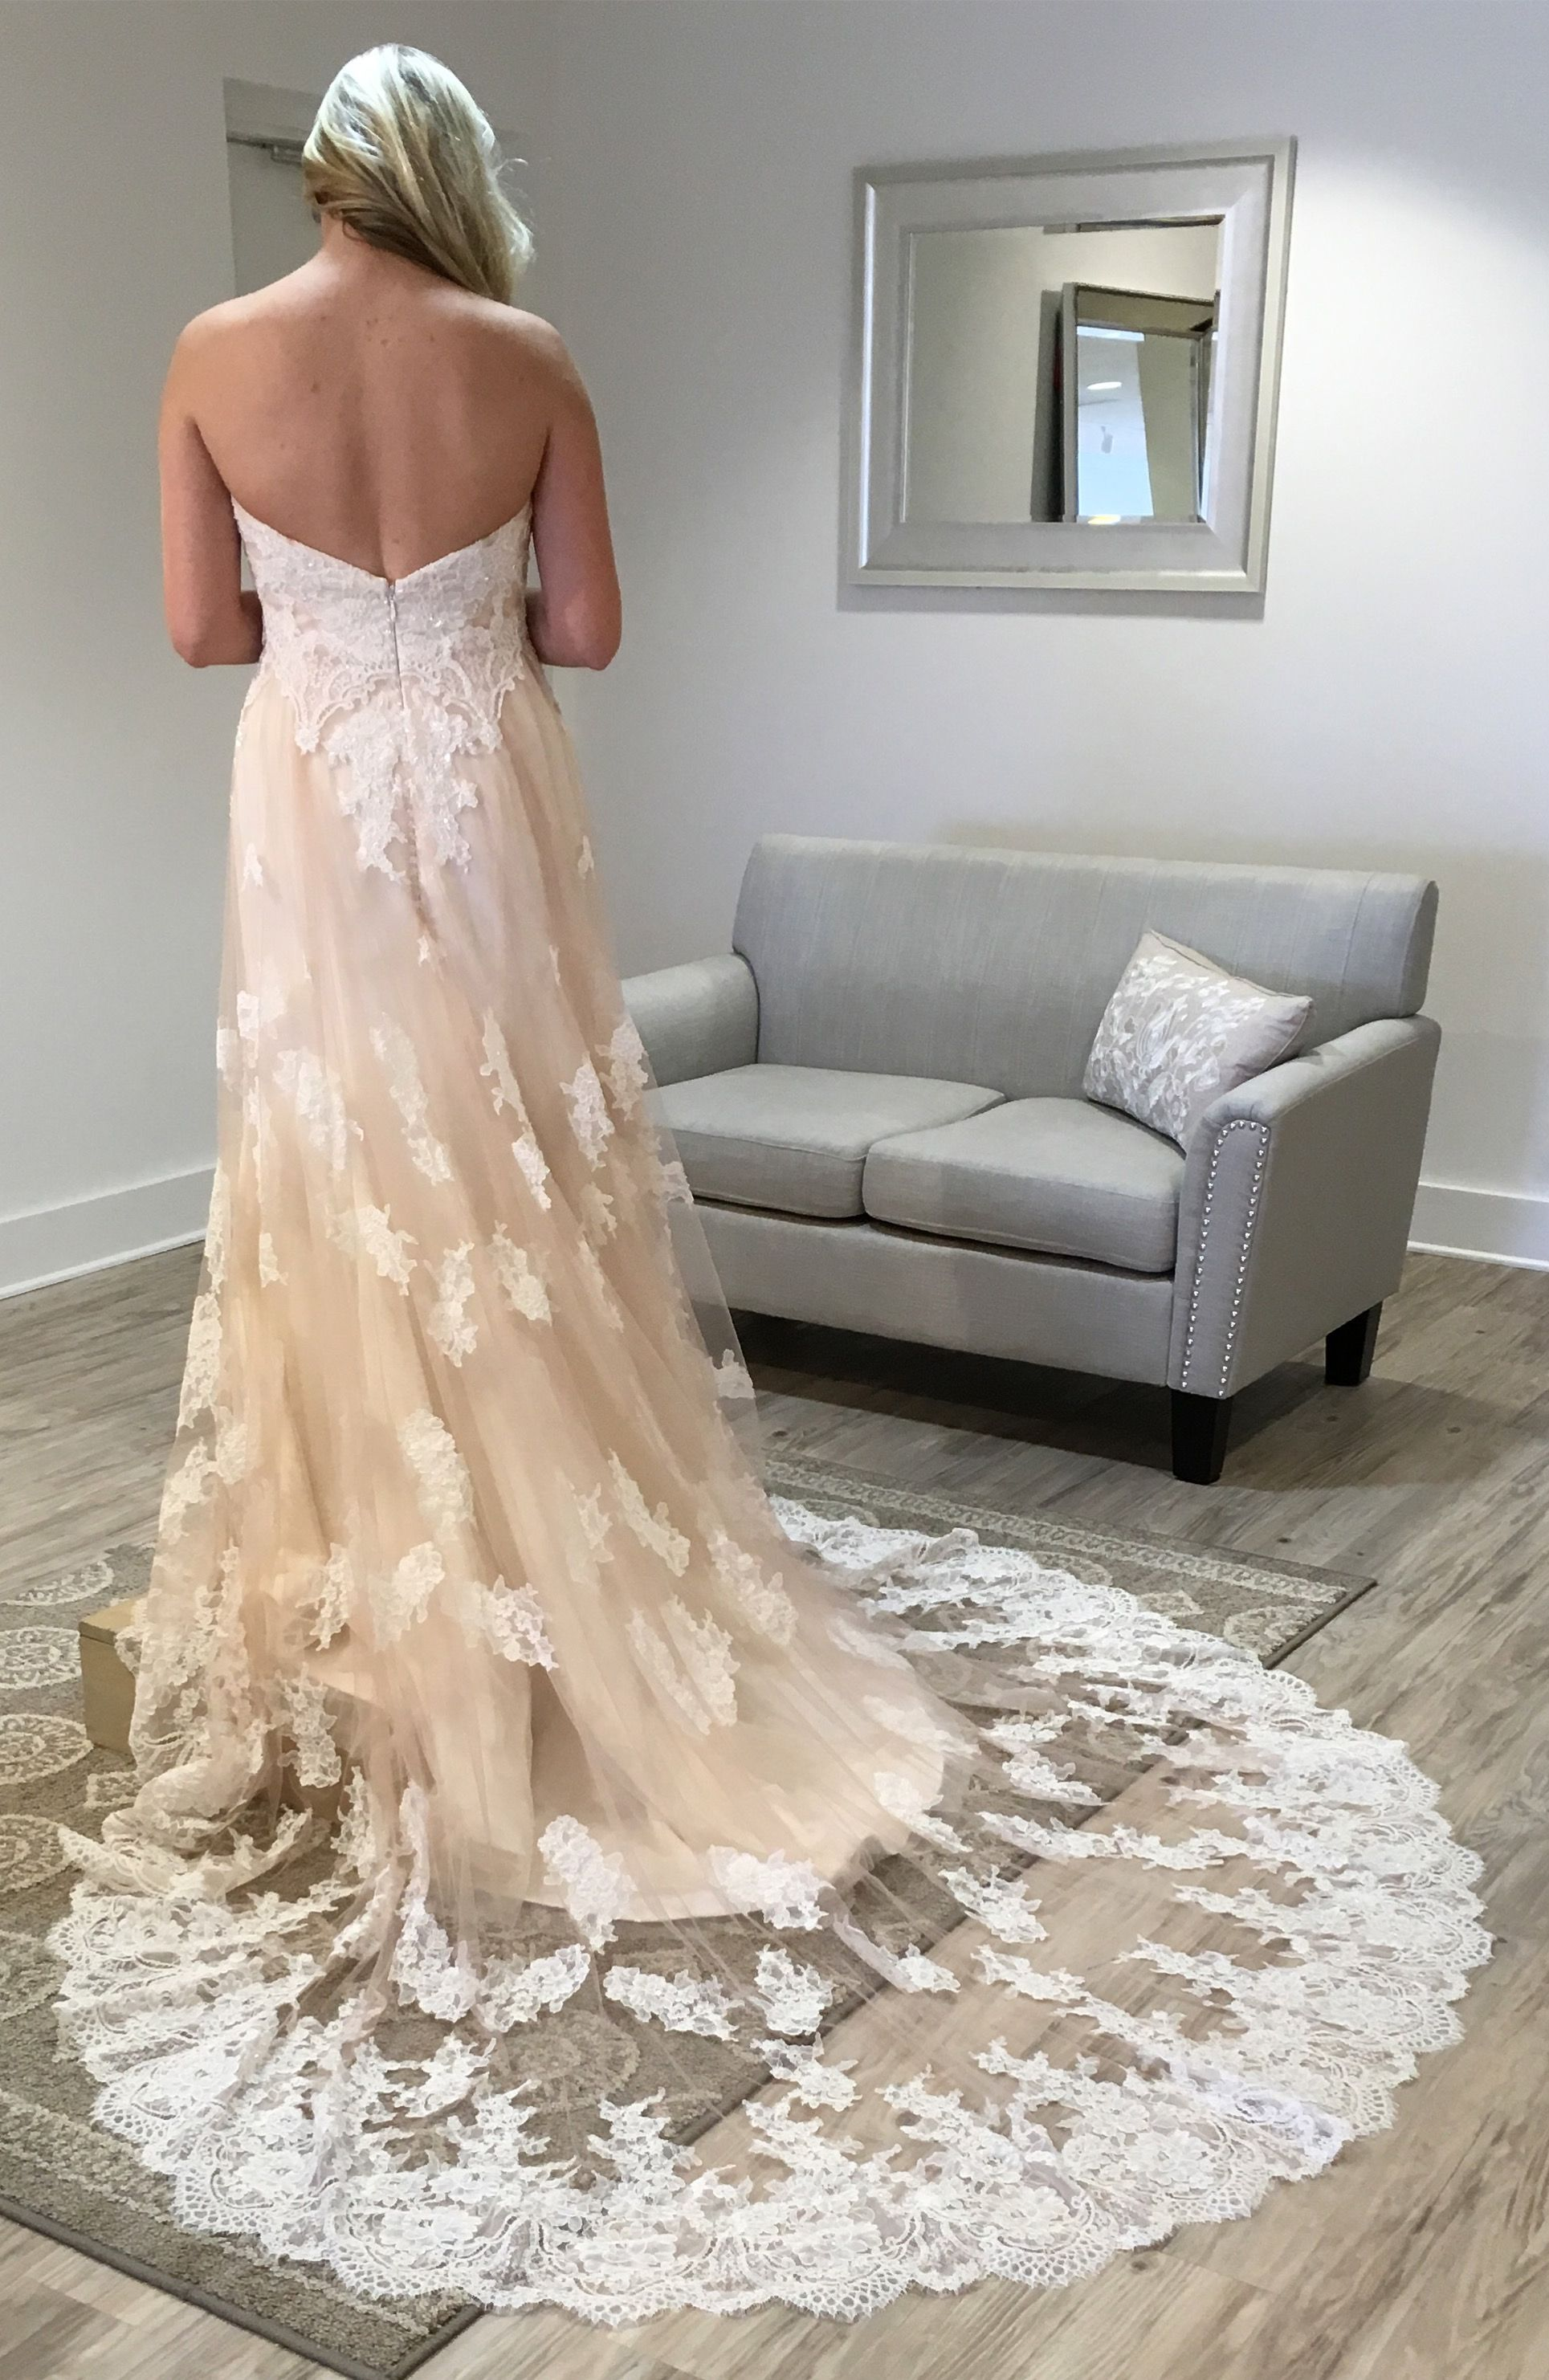 Consignment Shops For Wedding Dresses In Raleigh Nc Goldin Ma